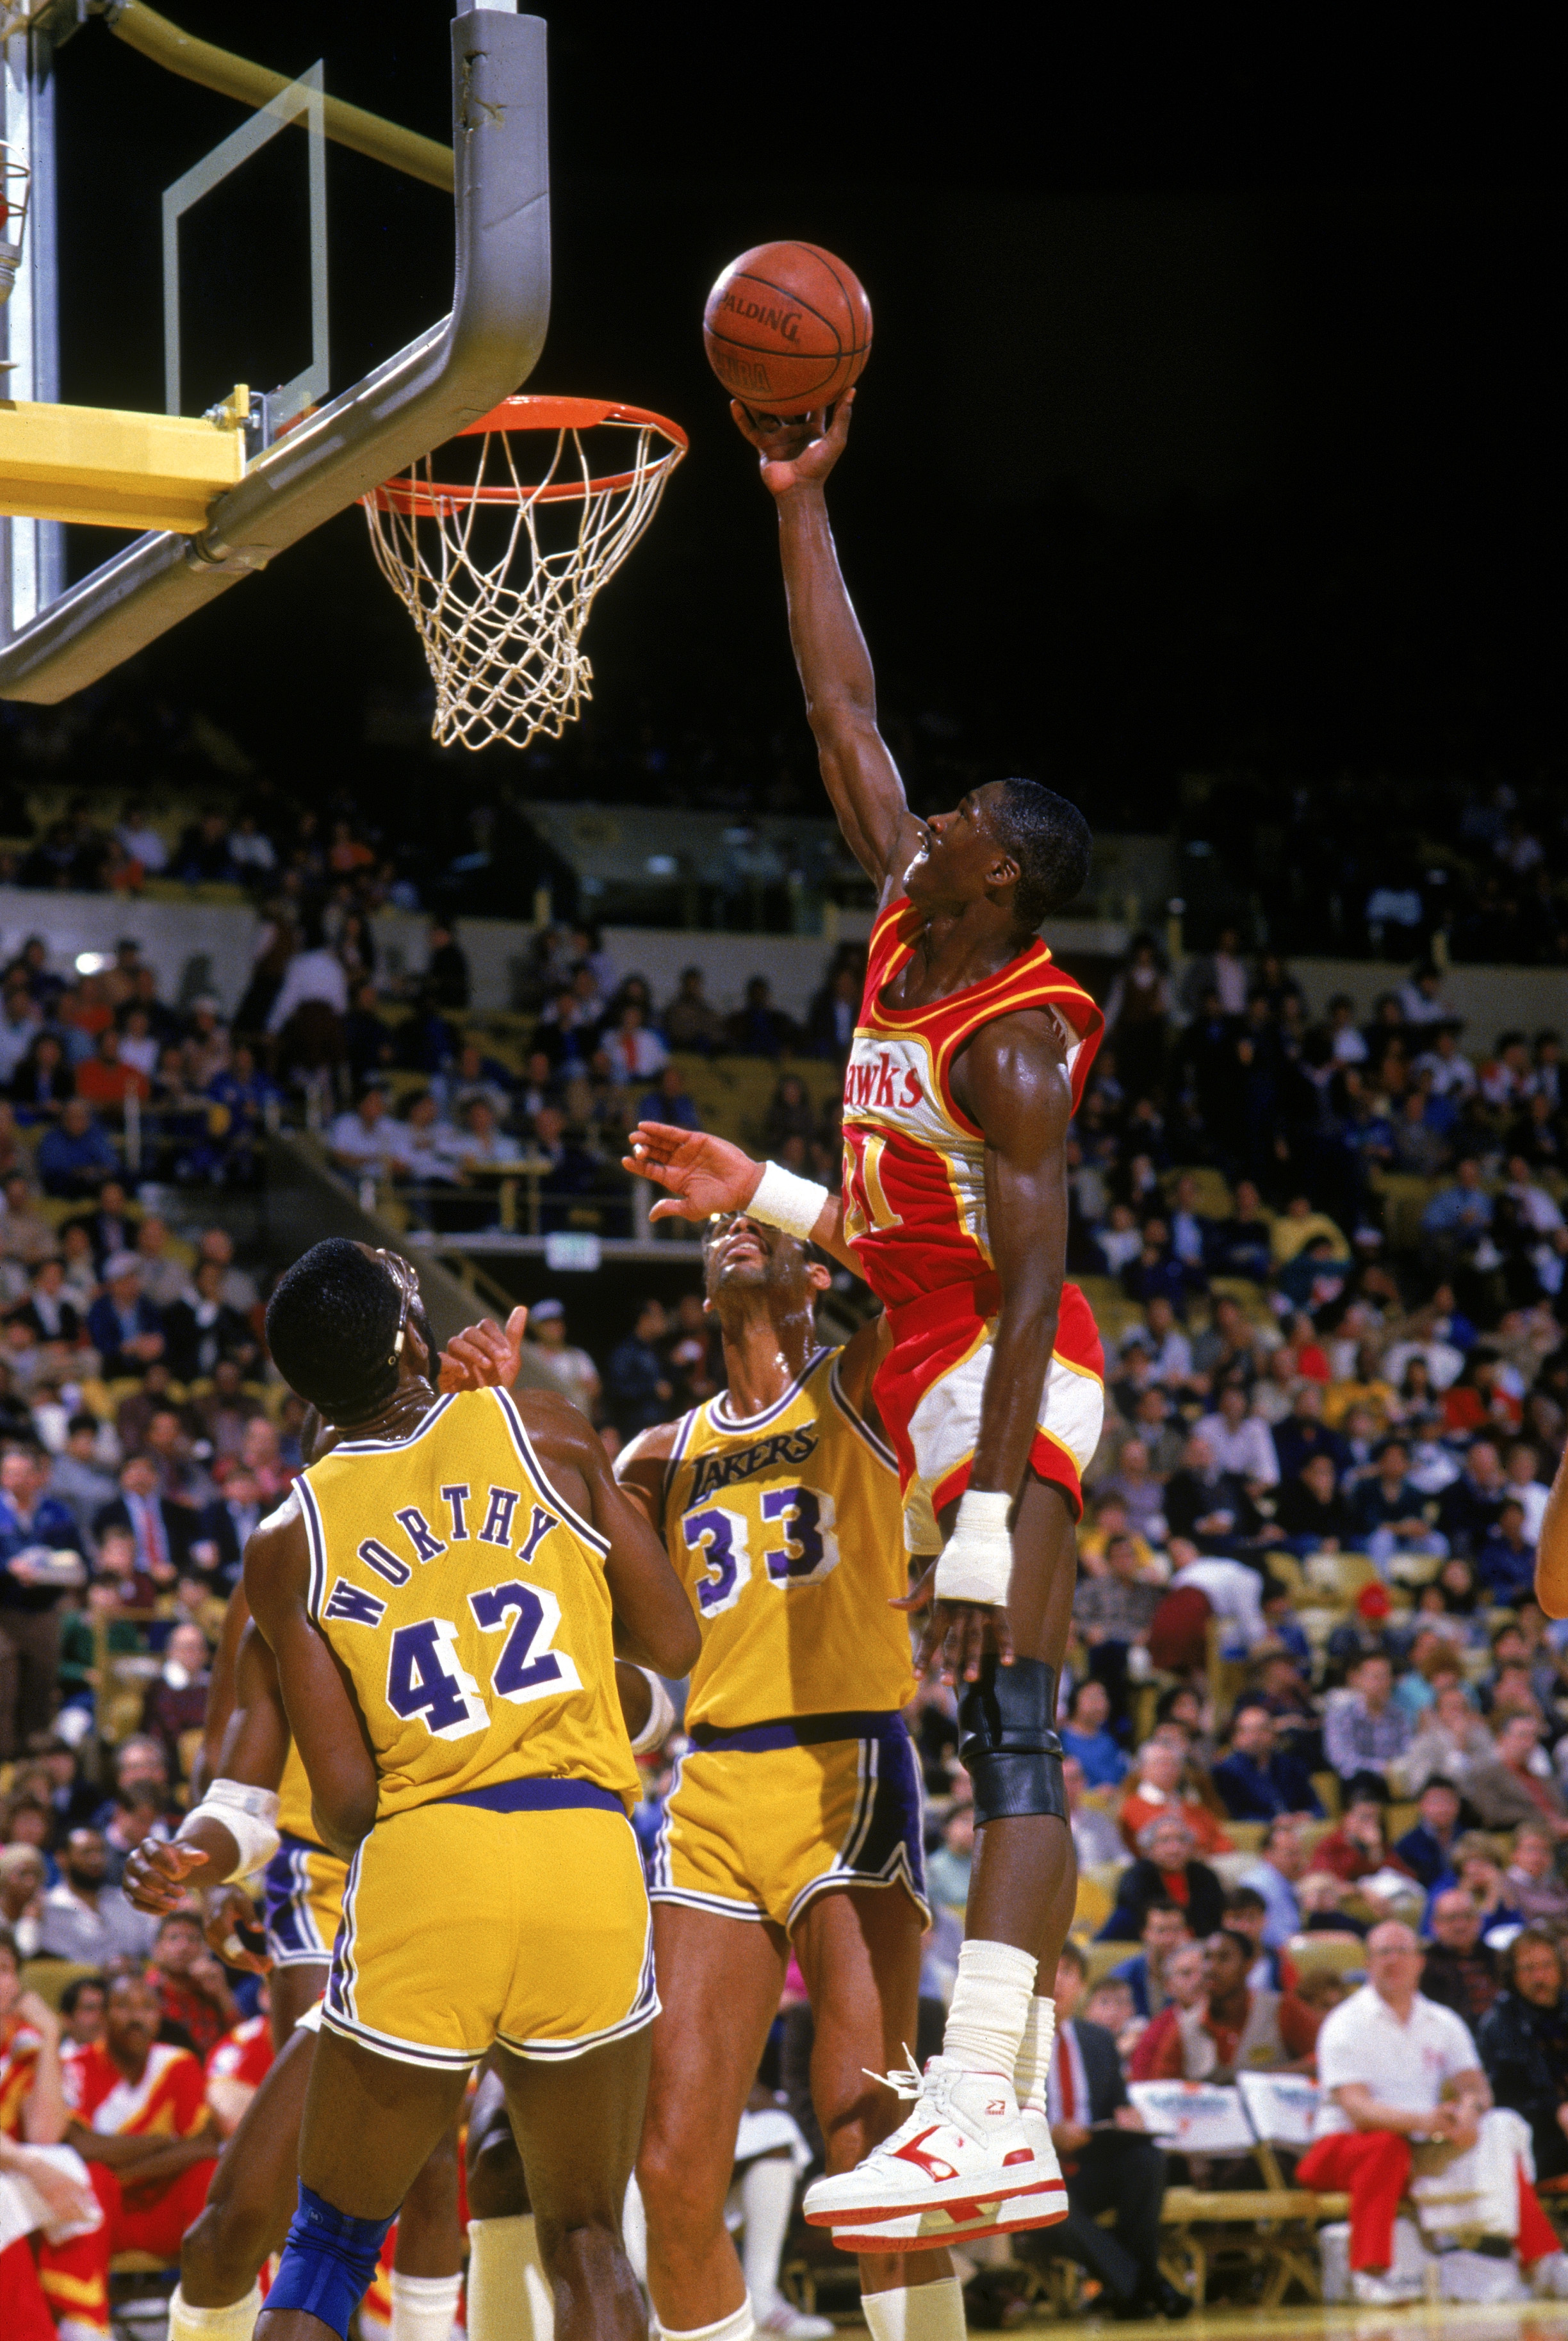 INGLEWOOD, CA - 1986:  Dominique Wilkins #21 of the Atlanta Hawks goes up for a layup against James Worthy #42 and Kareem Abdul-Jabbar #33 of the Los Angeles Lakers during a 1986 NBA season game at the Great Western Forum in Inglewood, California.   (Phot